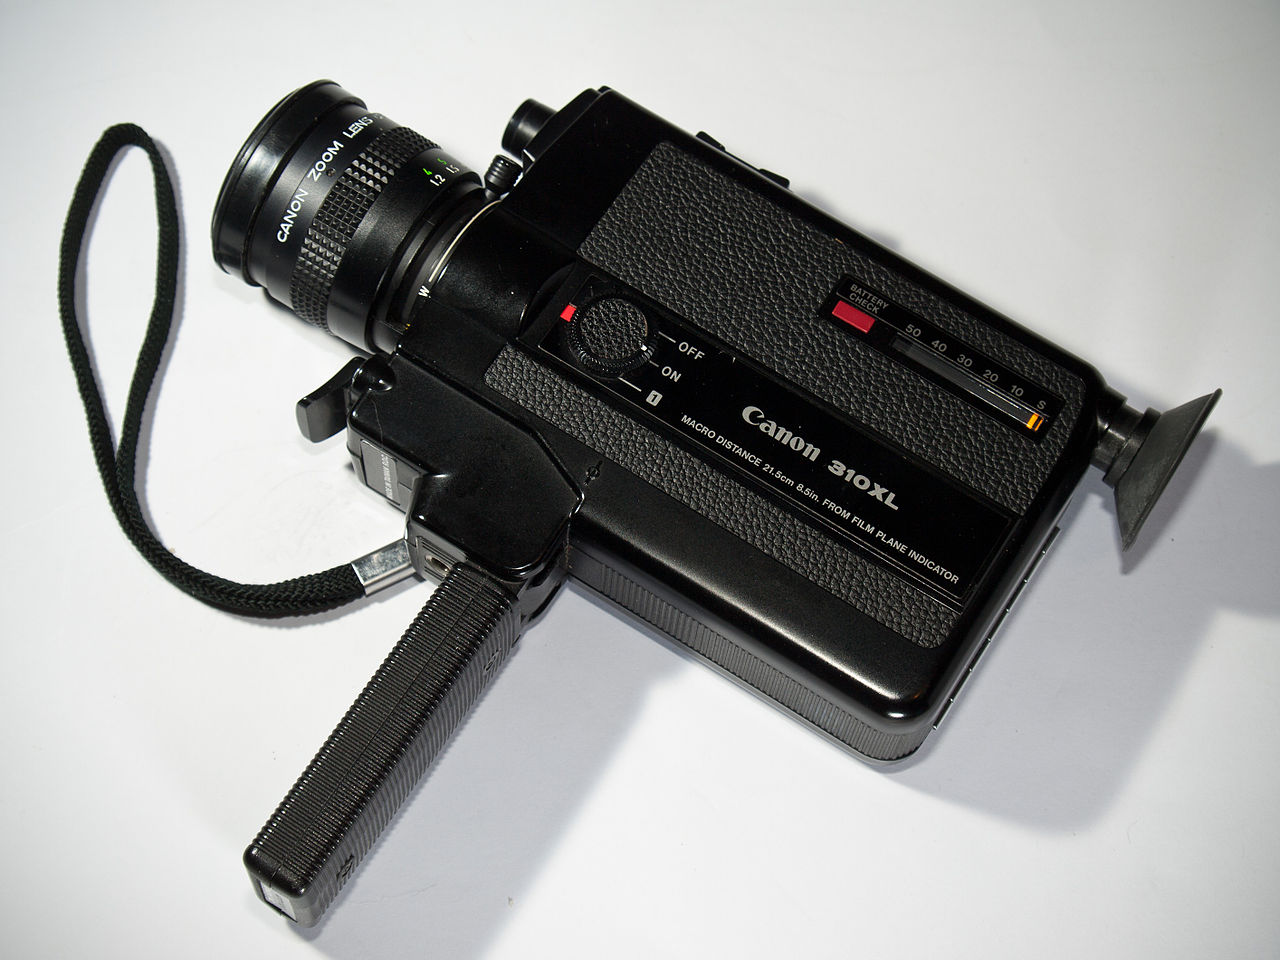 1280px-Canon_310XL_Super_8_camera.jpg